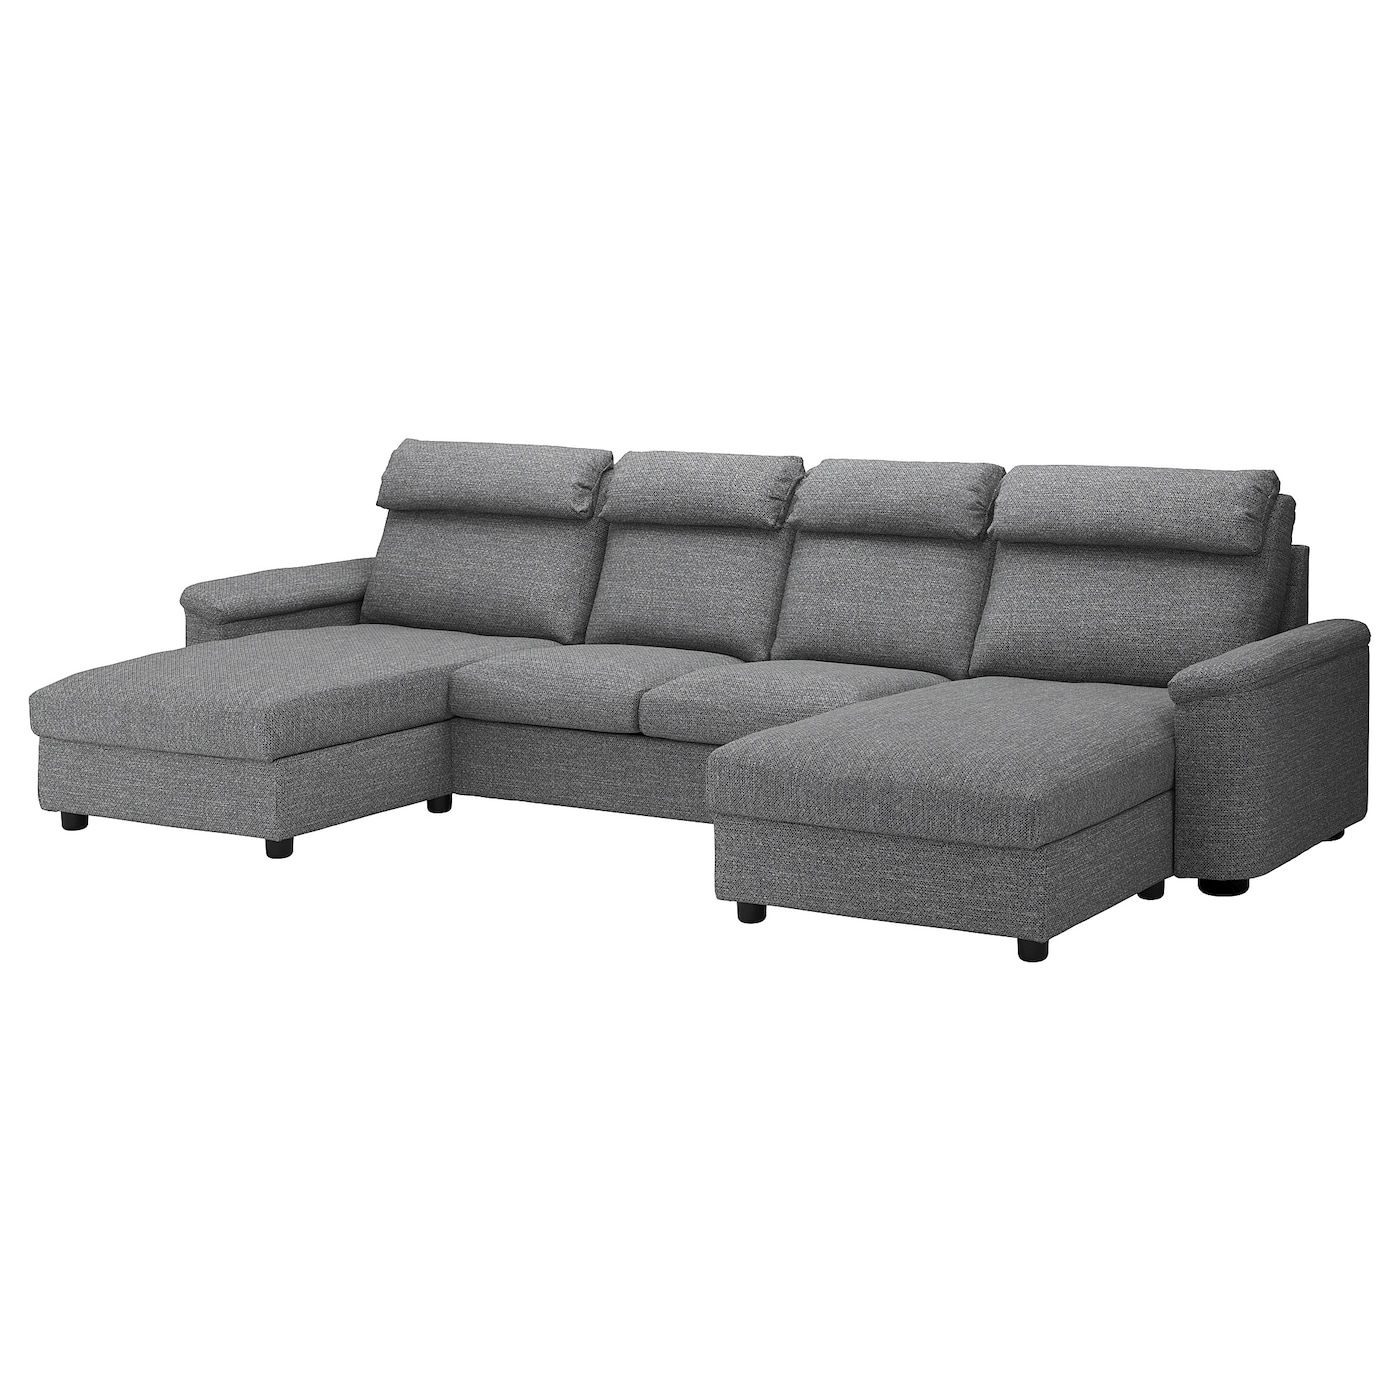 Ikea Lidhult 4 Seat Sofa The Cover Is Easy To Keep Clean Since It